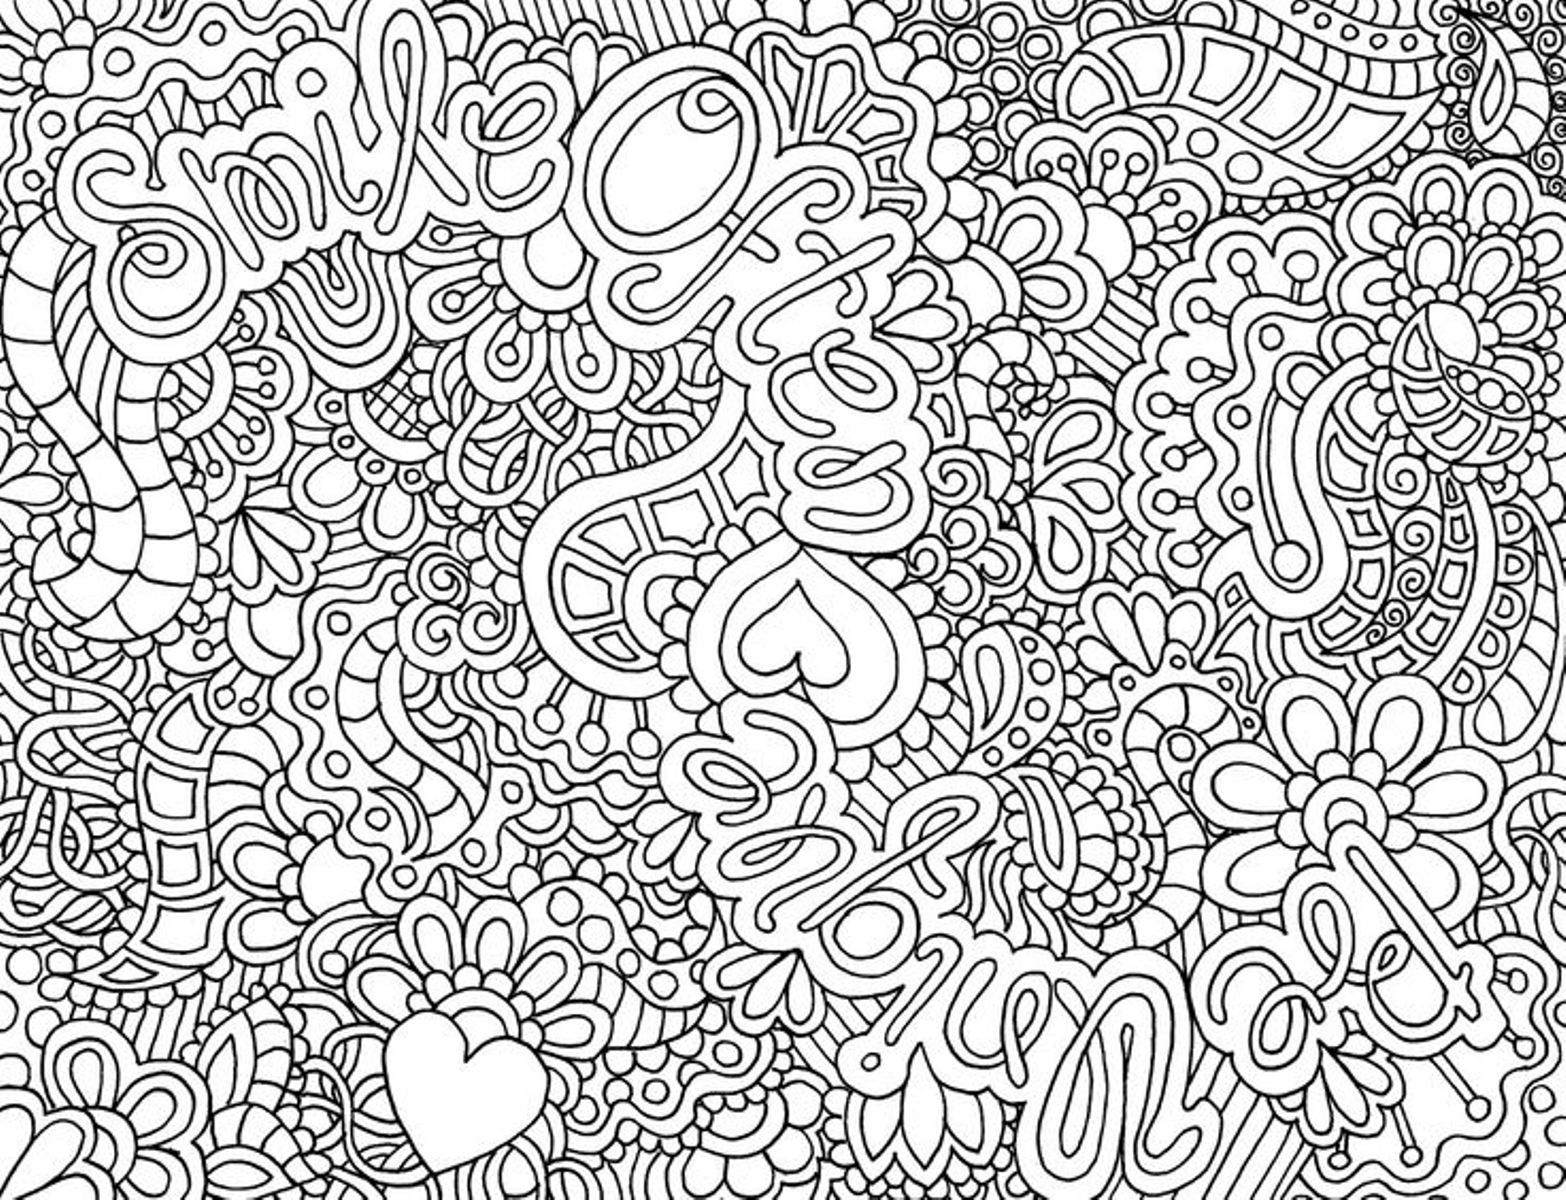 Hard Coloring Page - Coloring Pages for Kids and for Adults